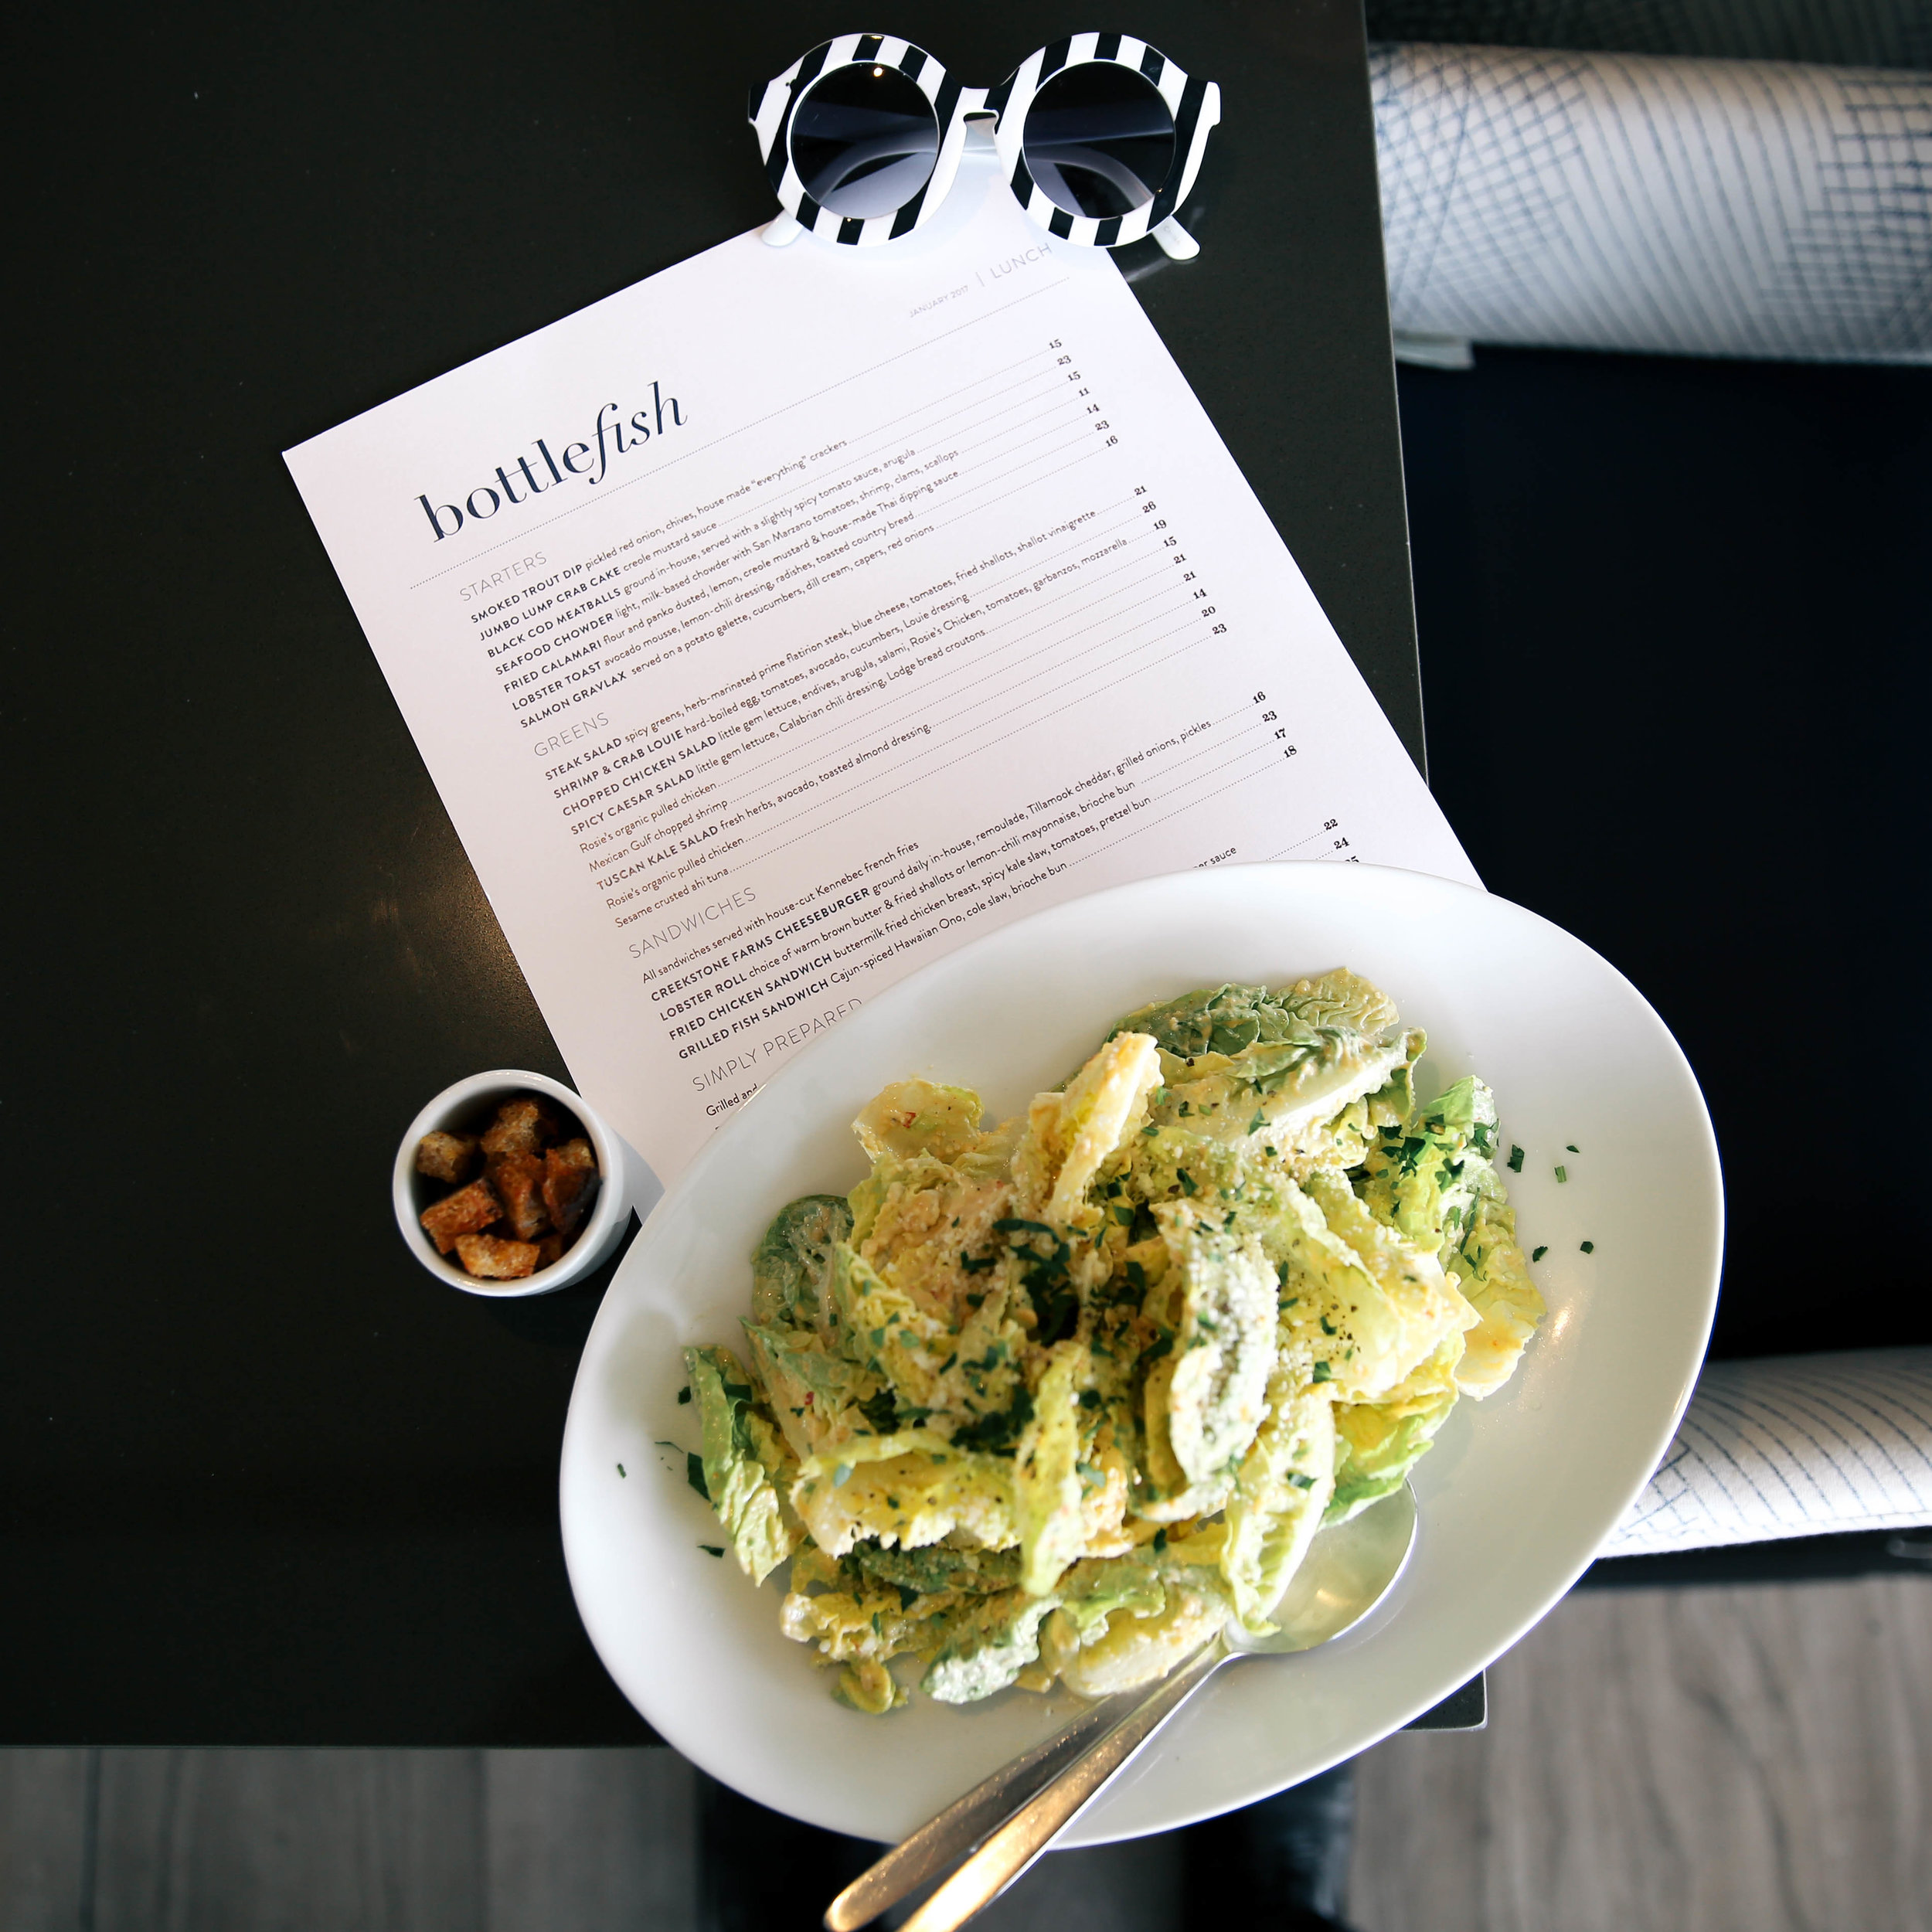 Bottlefish Los Angeles menu spicy caesar salad The Style Sauce blog